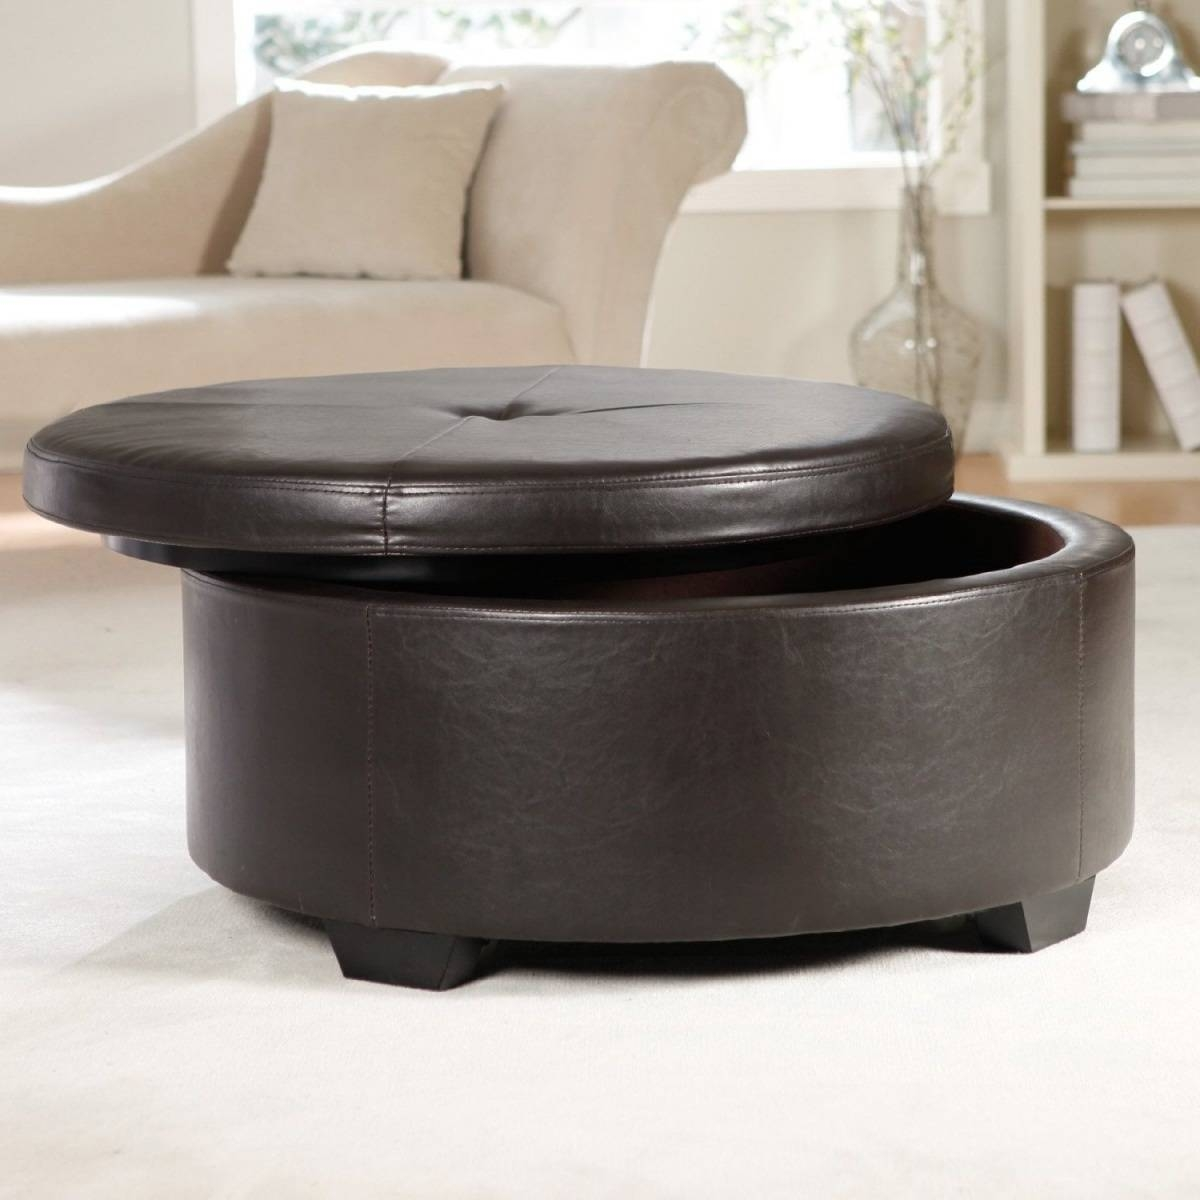 Perfect Coffee Table Storage Ottomans Underneath with Round Upholstered Coffee Tables (Image 22 of 30)